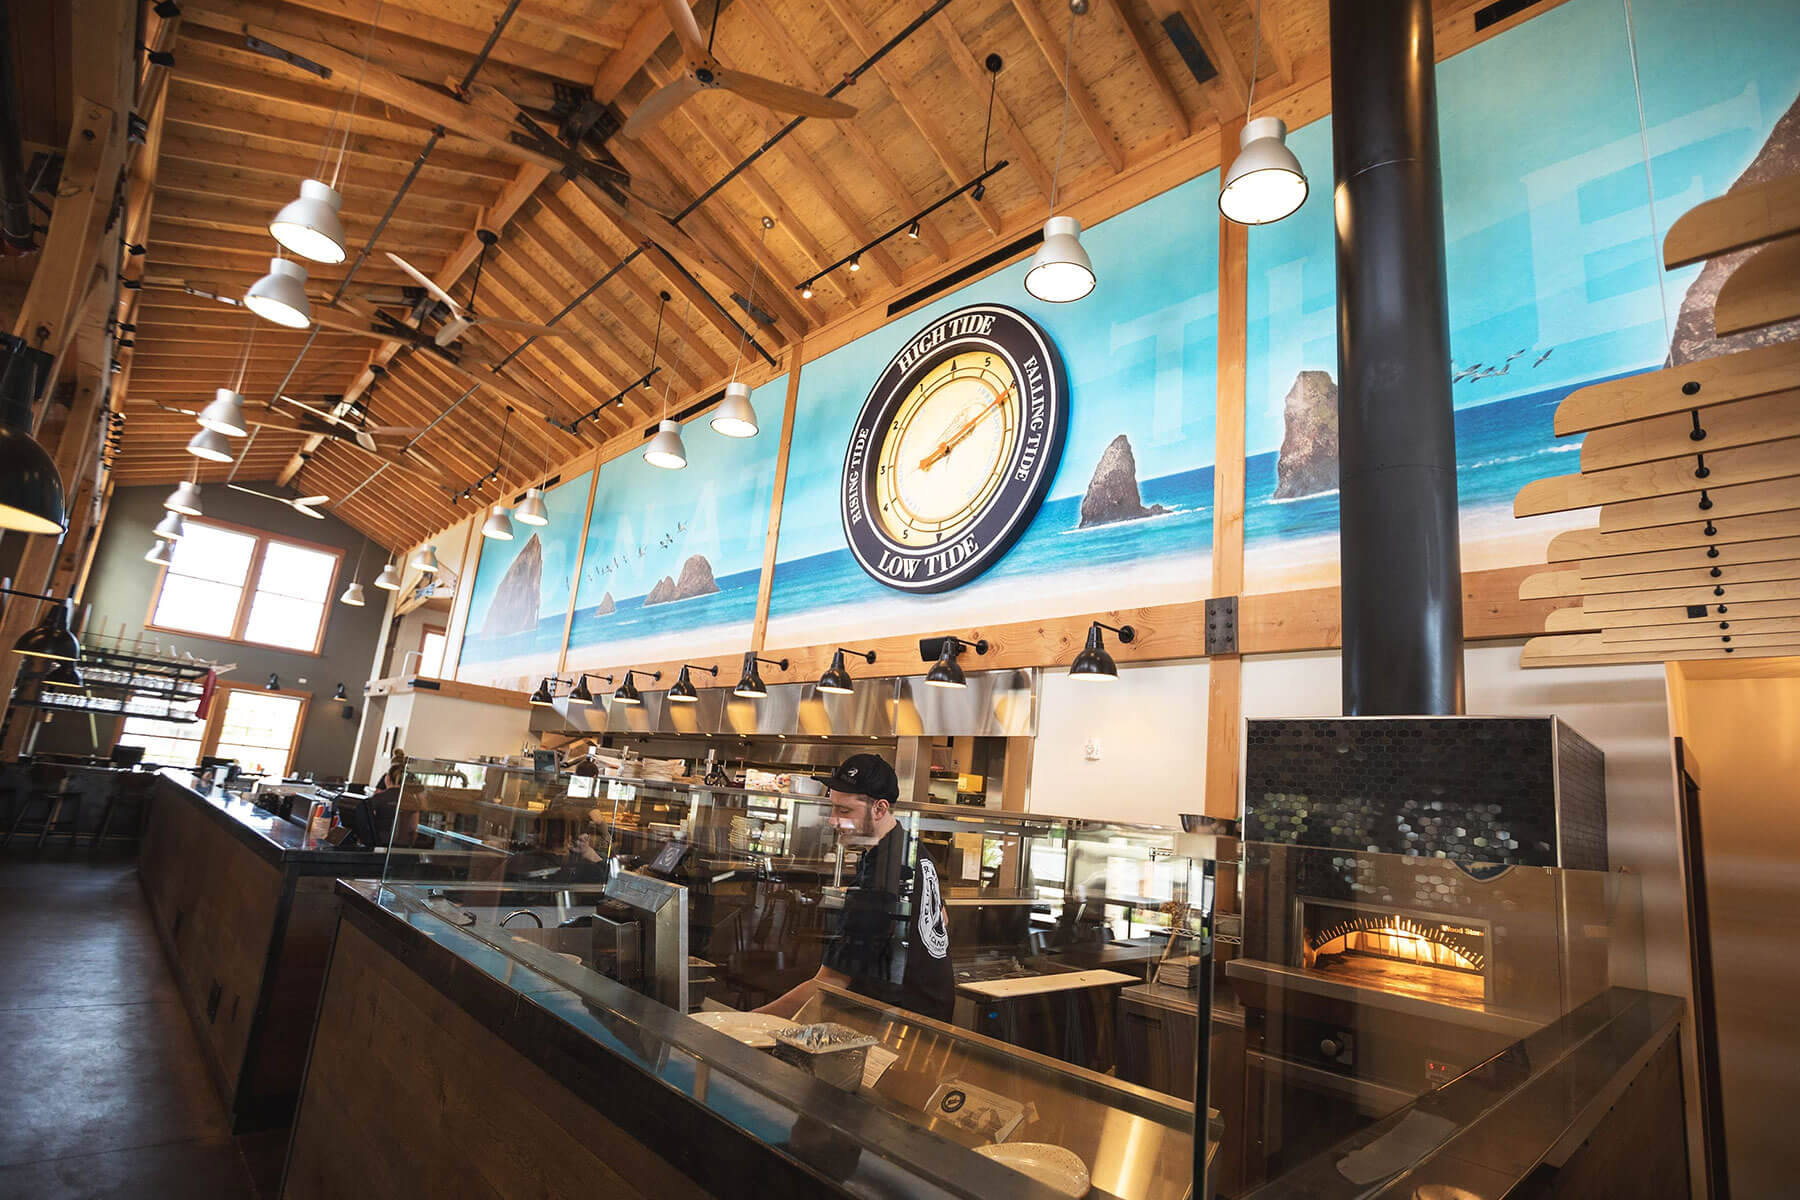 Inside the taproom at the Pelican Brewing Company Cannon Beach Location